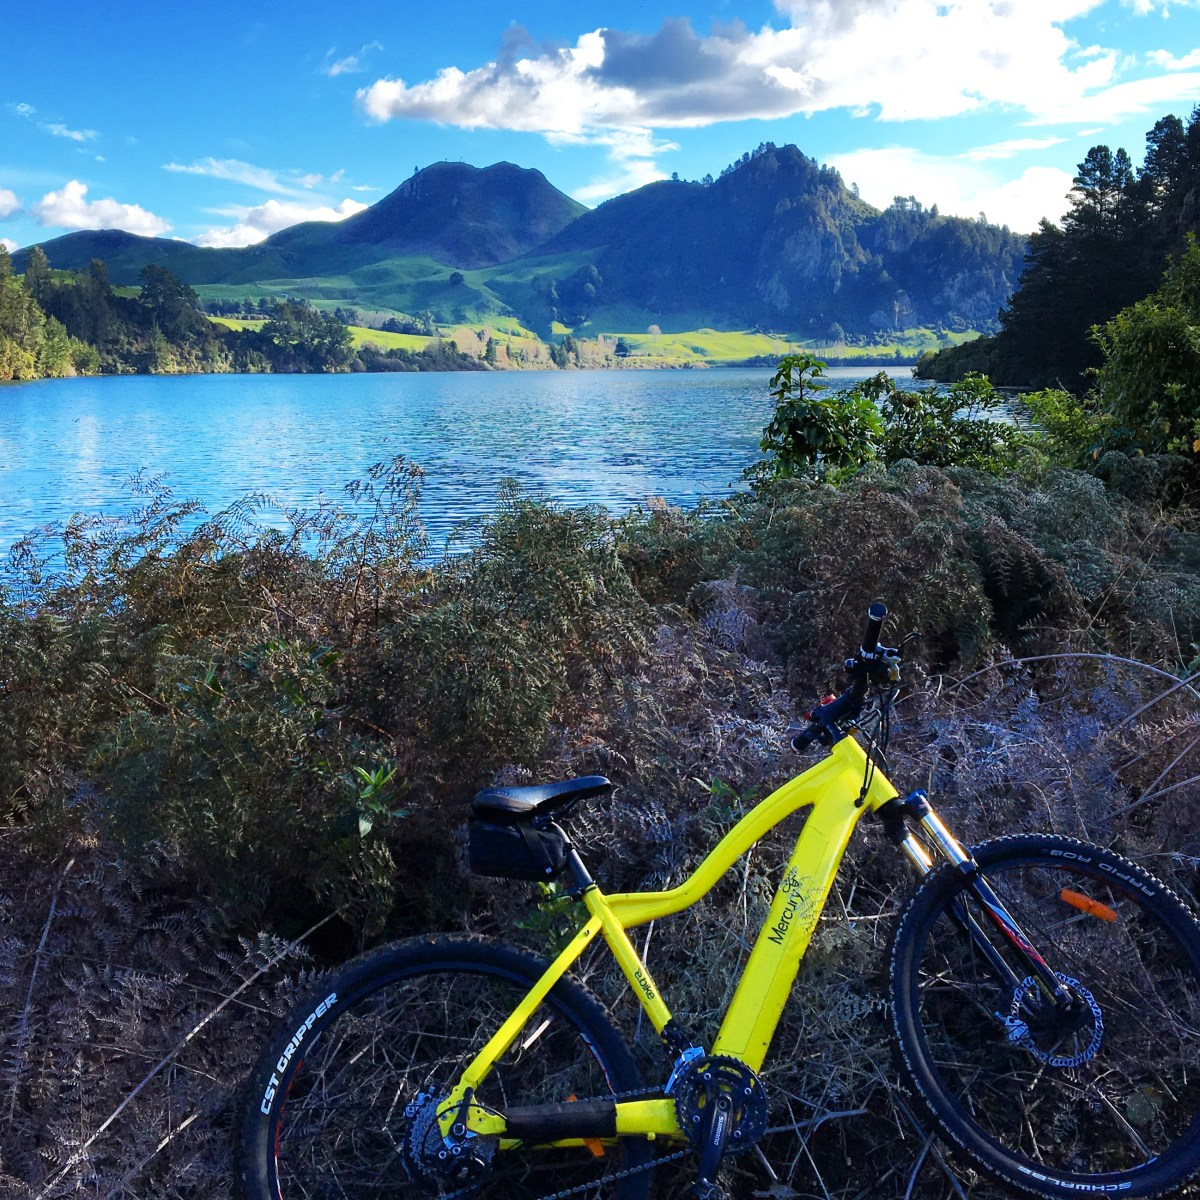 E-Biking The Waikato River Trails - My NZ Herald Article + Top 20 Photos